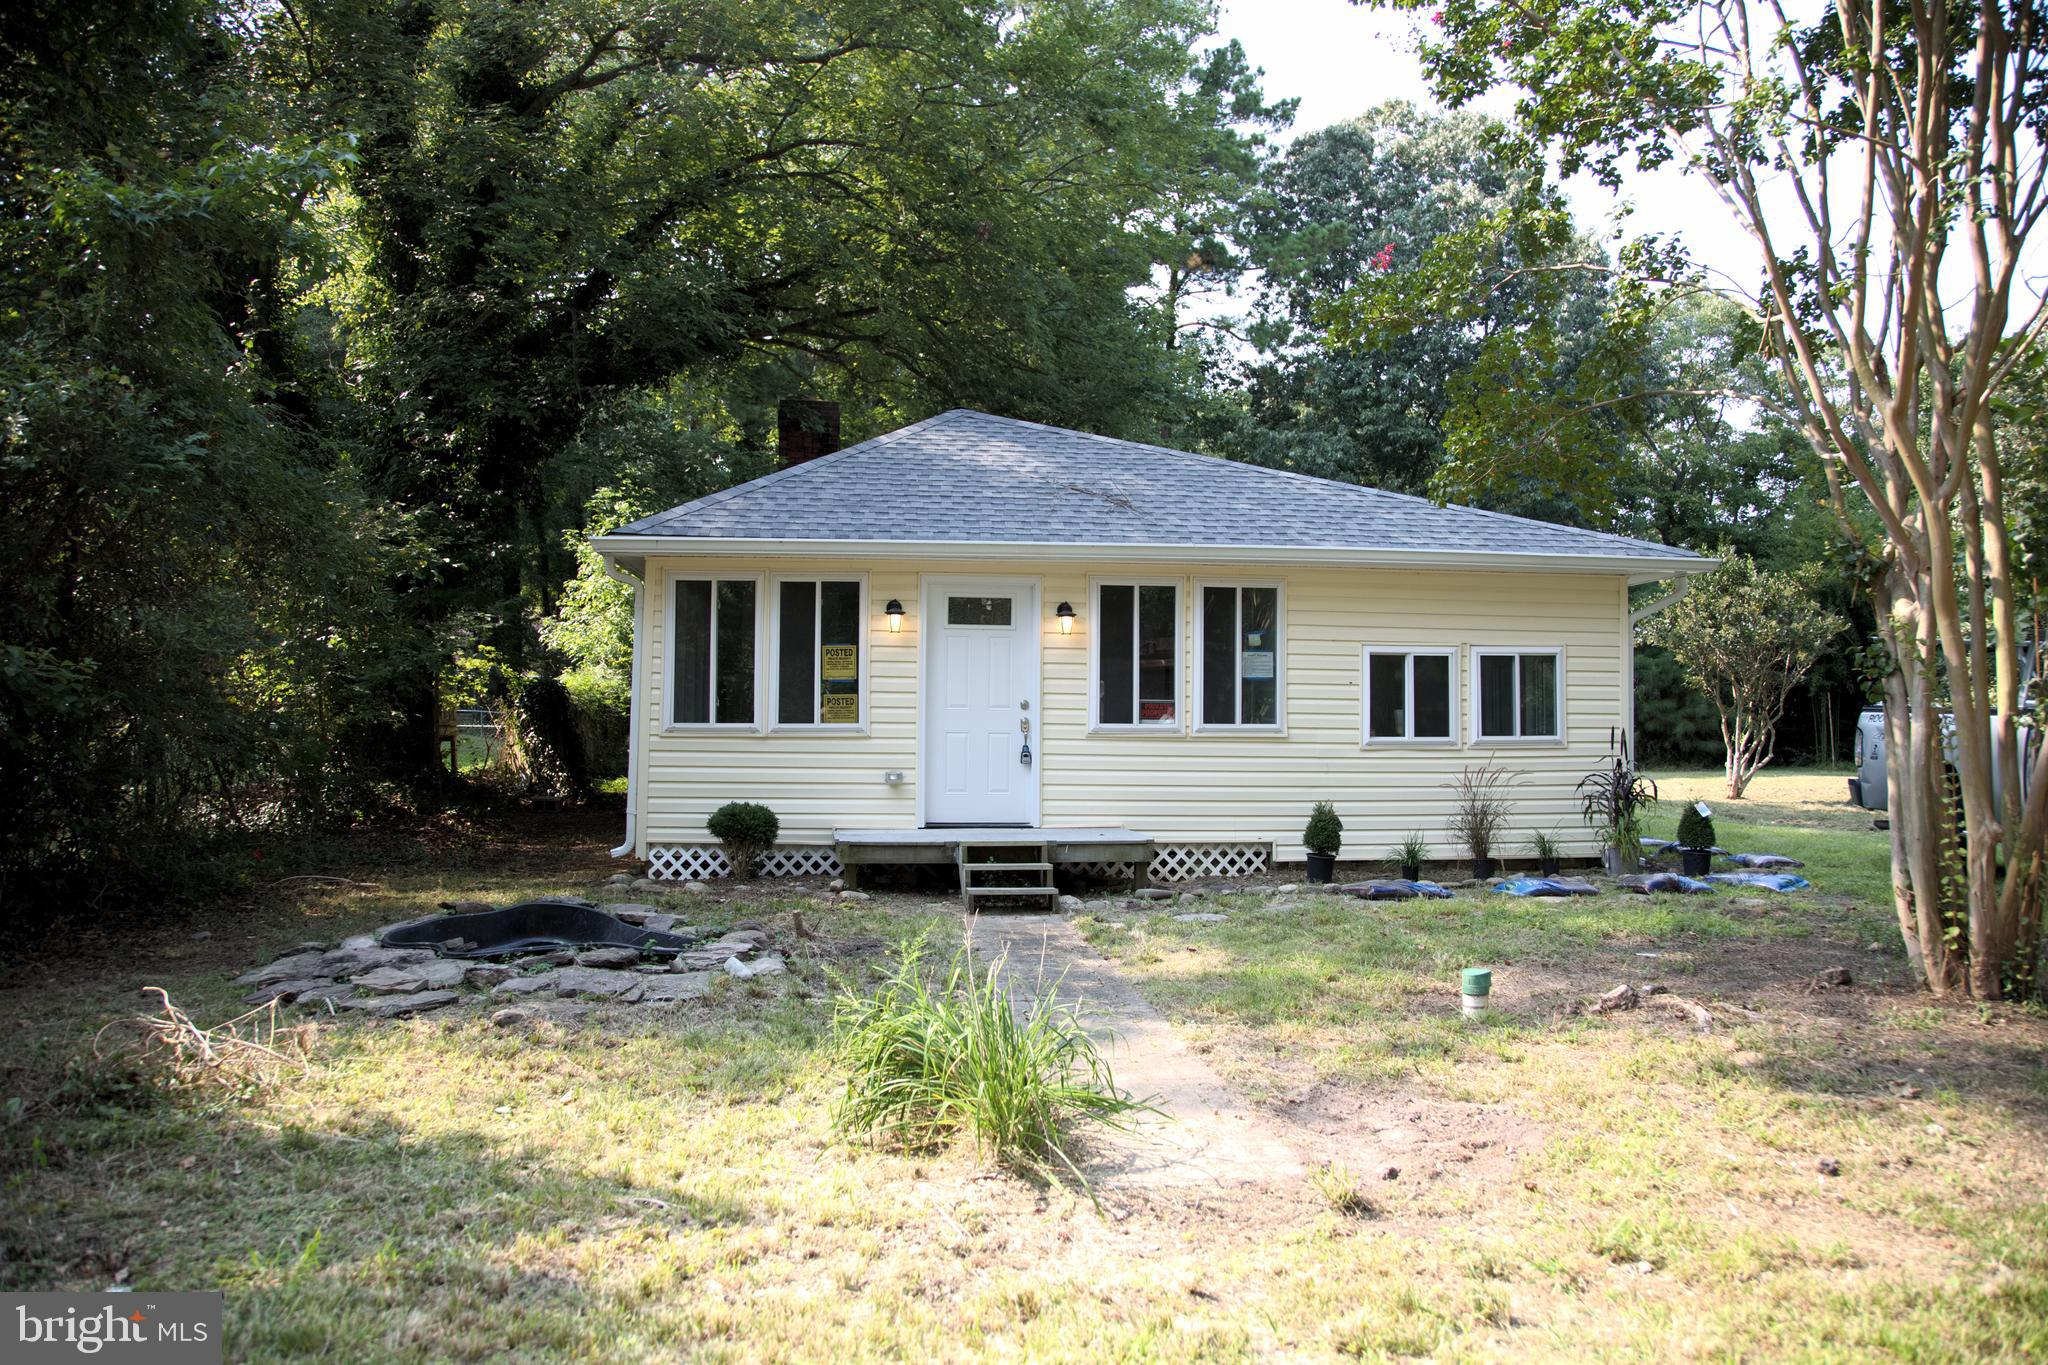 Completely  remodeled bungalow/cottage with all new central a/c, new roof, siding, windows, gutters, appliances, flooring, bathrooms, kitchen, wiring, plumbing.  Home is on holding tank. 3 Bedroom, 1 bath cottage with water views.  open floor plan; Detached Garage on over 1/2 acre (.57). Verify flood insurance.